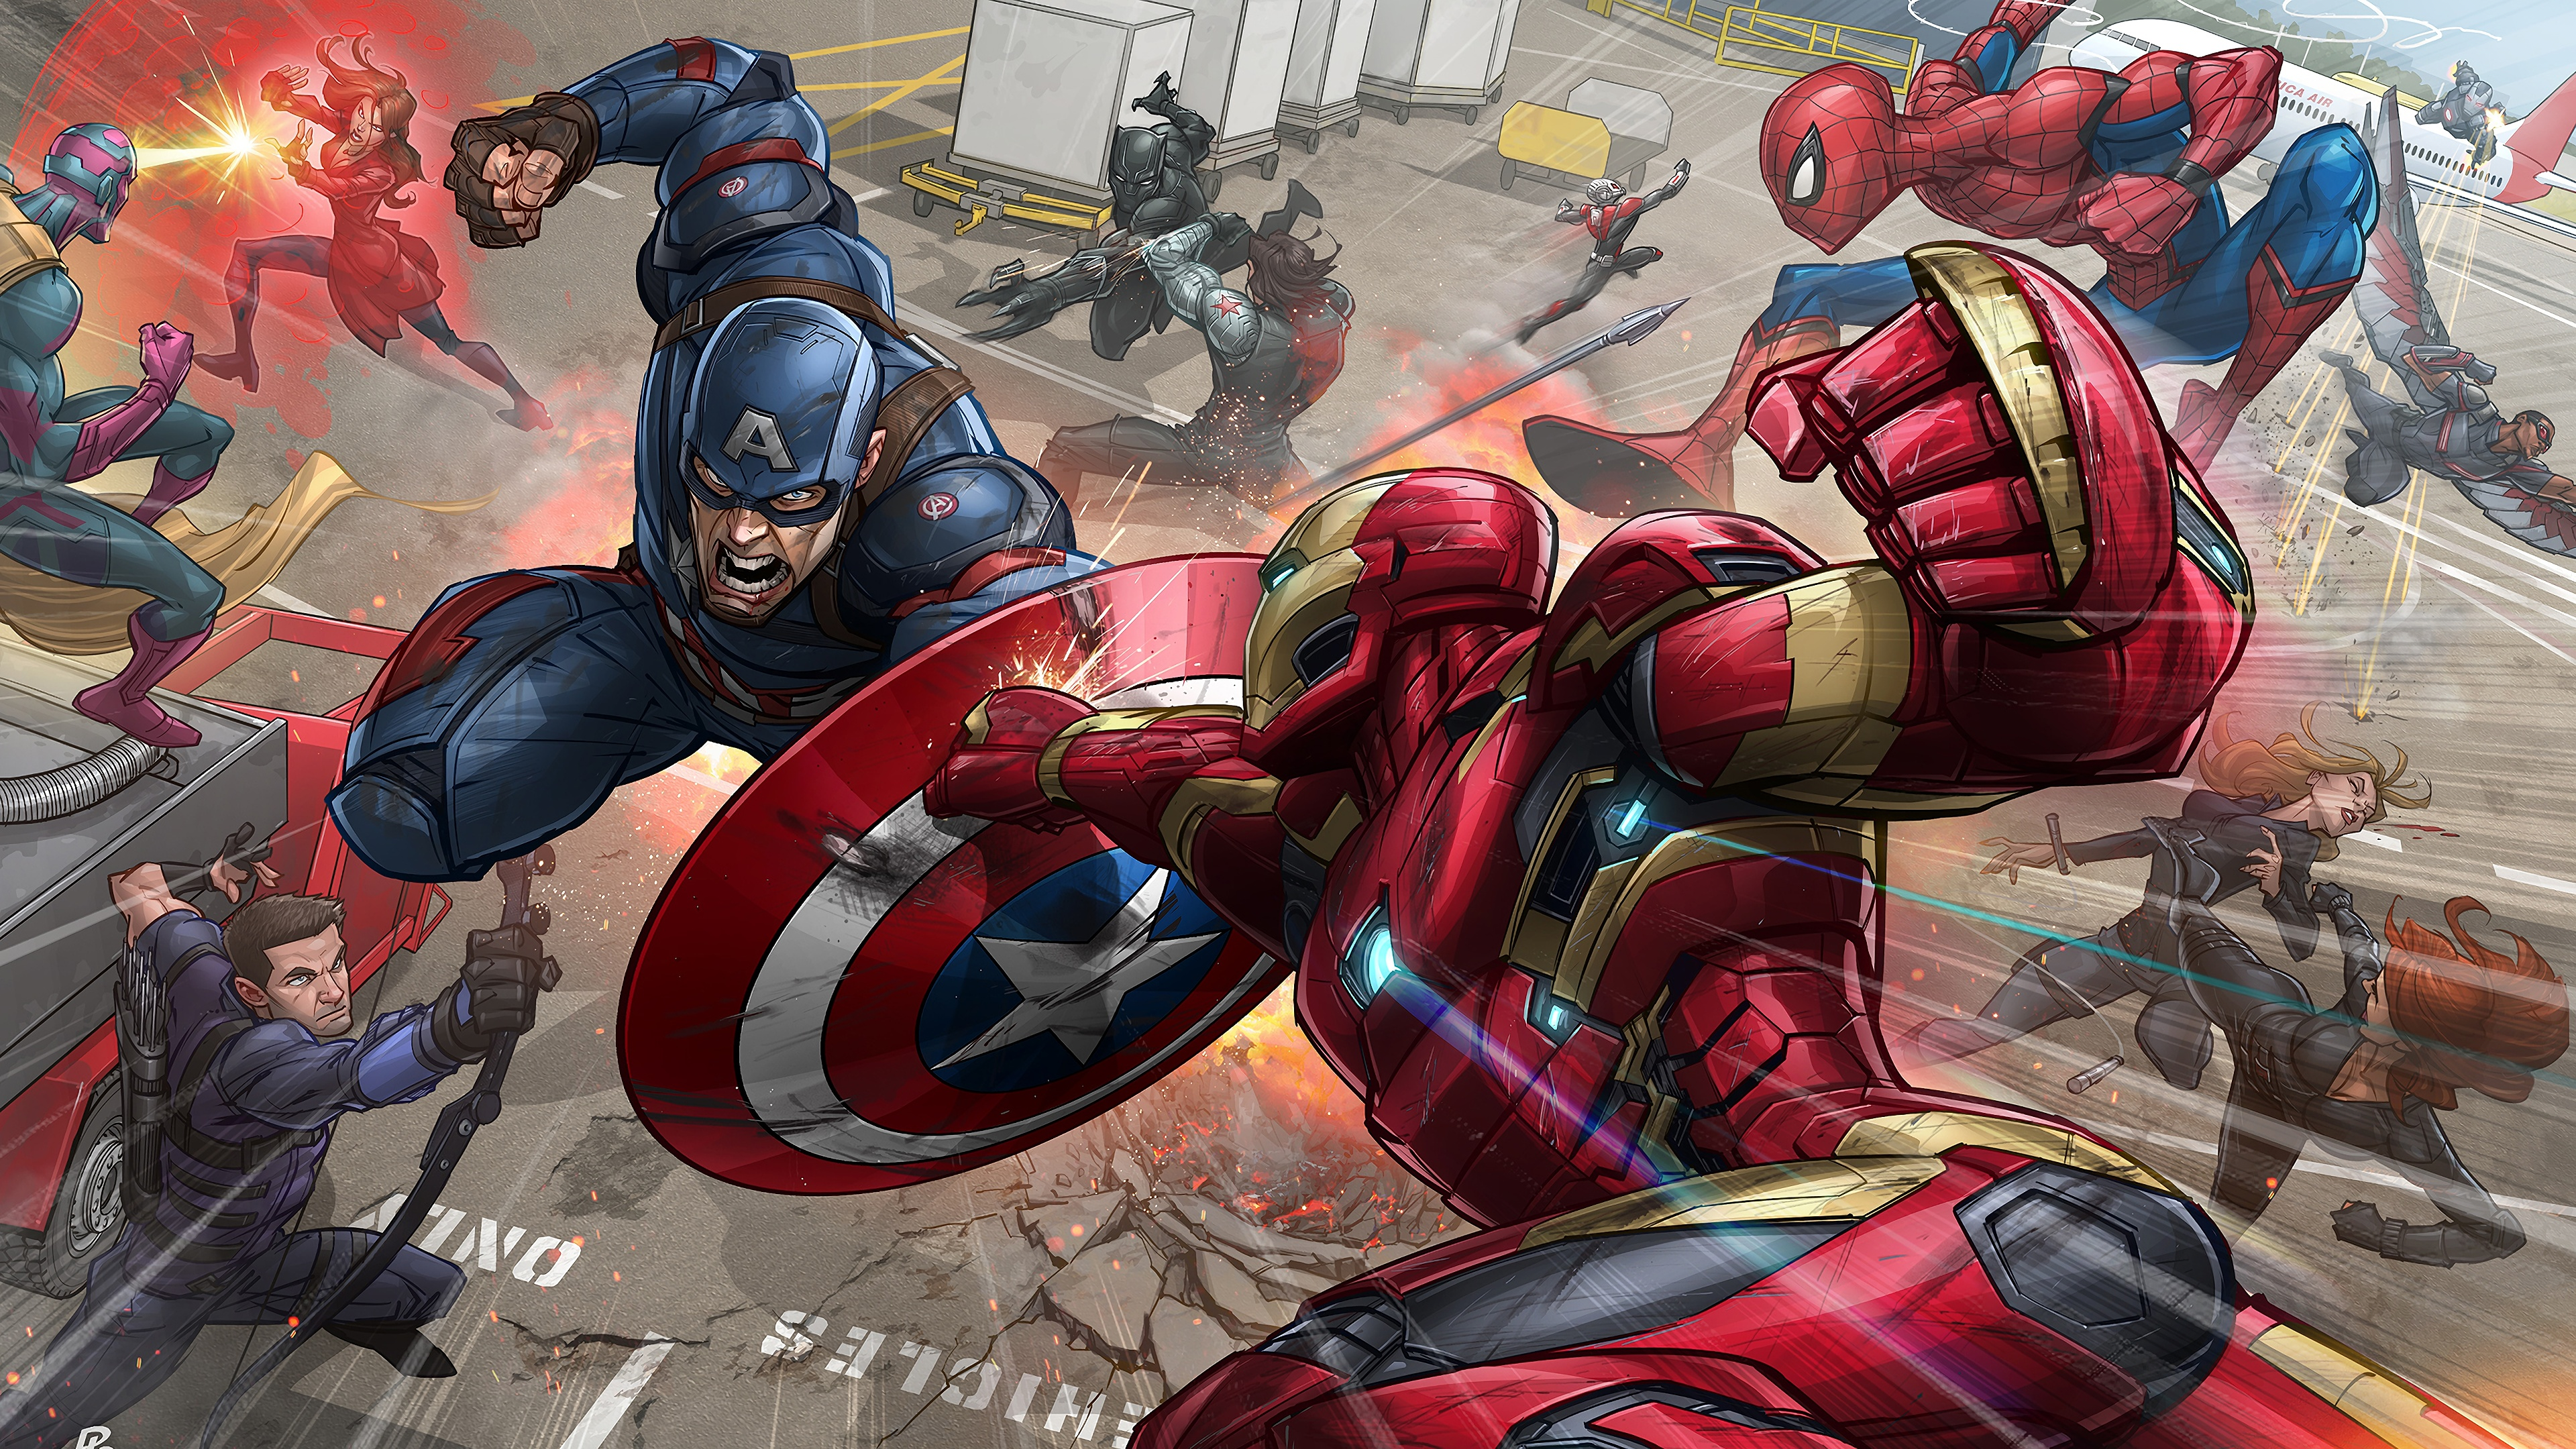 Wallpaper 4k Iron Man Captain America Fight Marvel Comics 4k